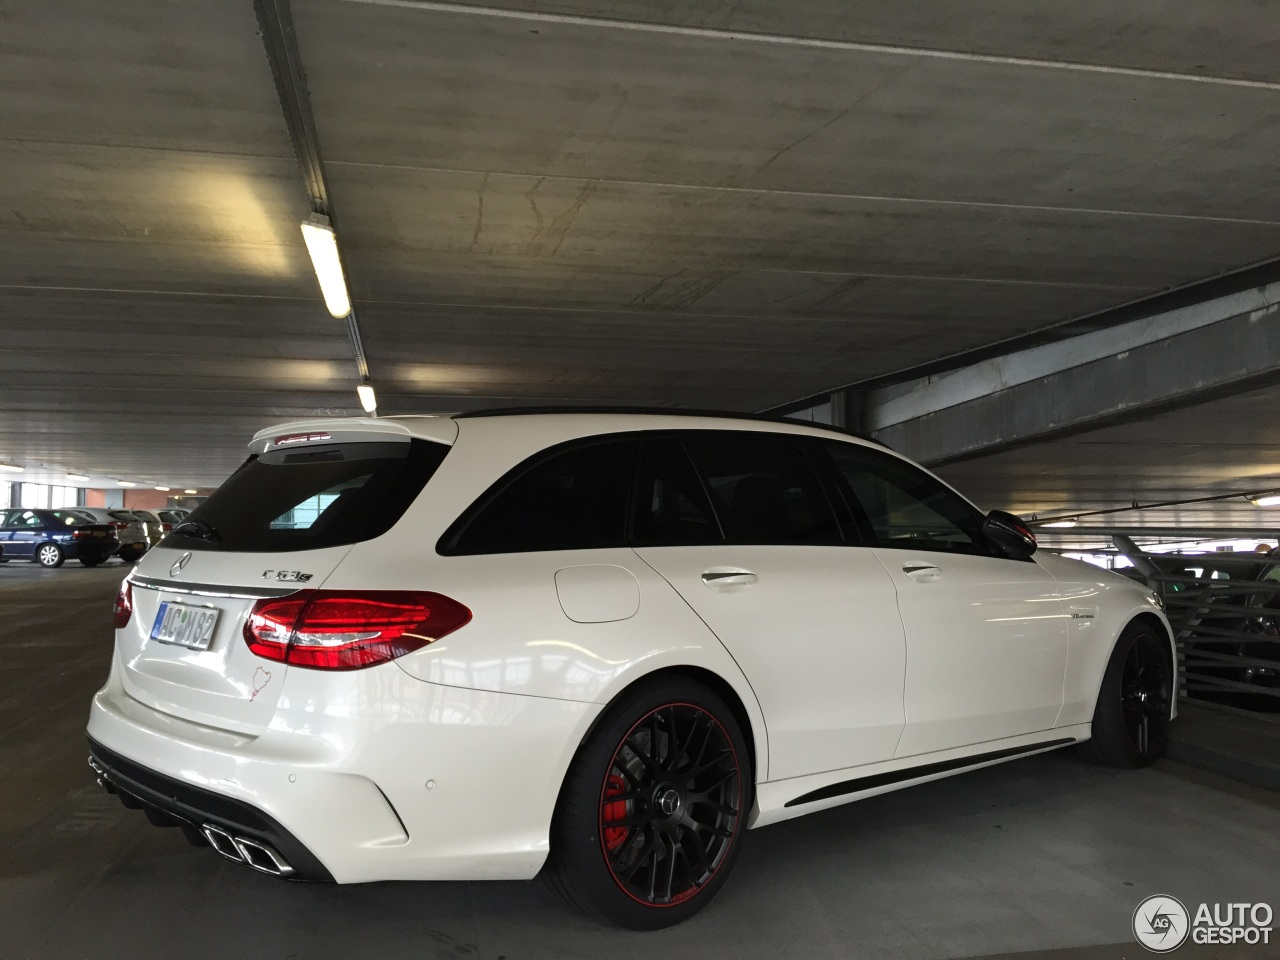 mercedes amg c 63 s estate s205 edition 1 12 july 2015. Black Bedroom Furniture Sets. Home Design Ideas